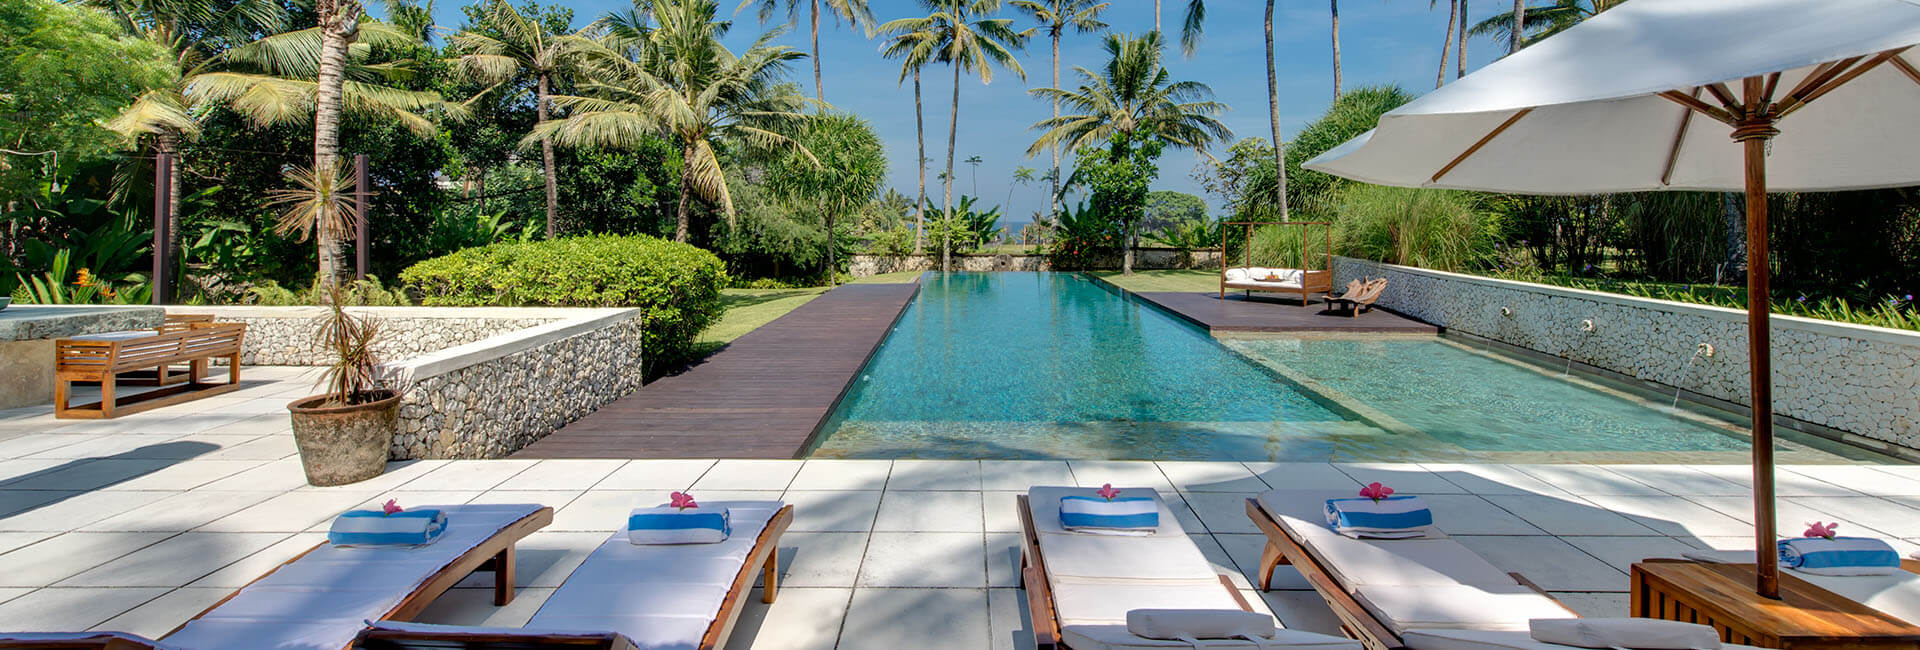 Luxus Outdoor Pool Links Samadhana Sanur Ketewel 5 Bedroom Luxury Villa Bali